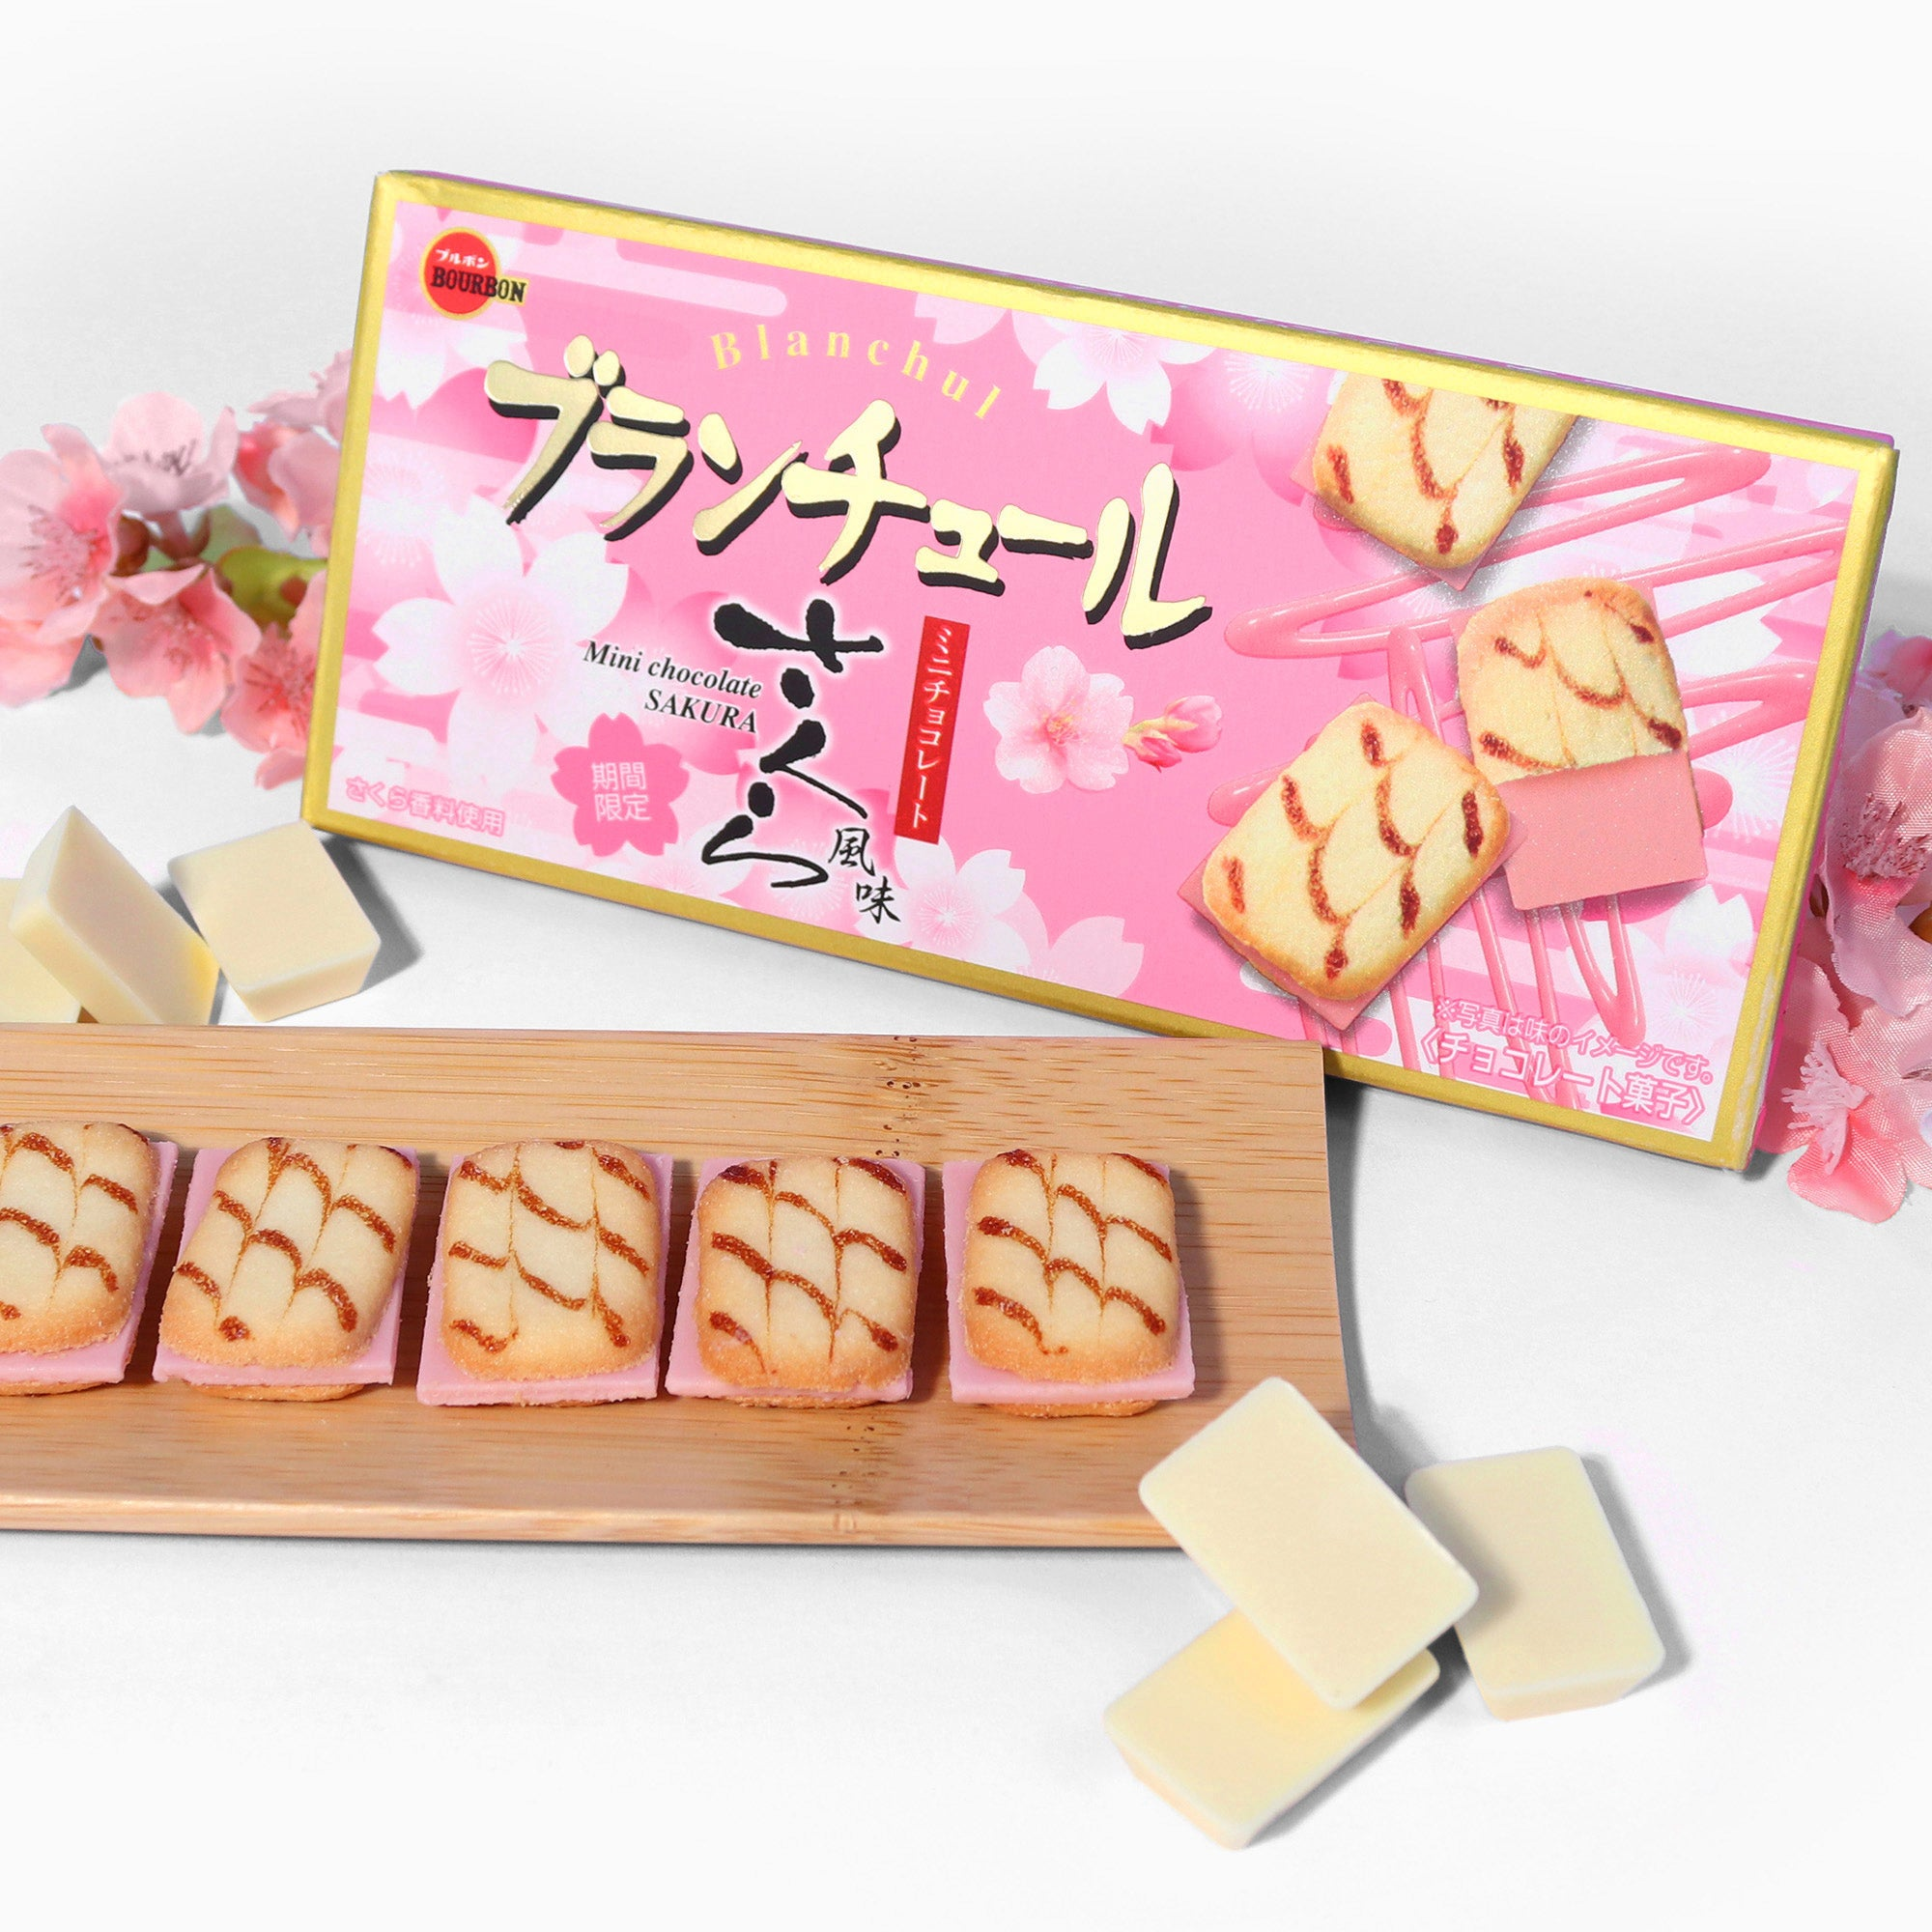 Blanchul Mini Chocolate: Sakura Flavor